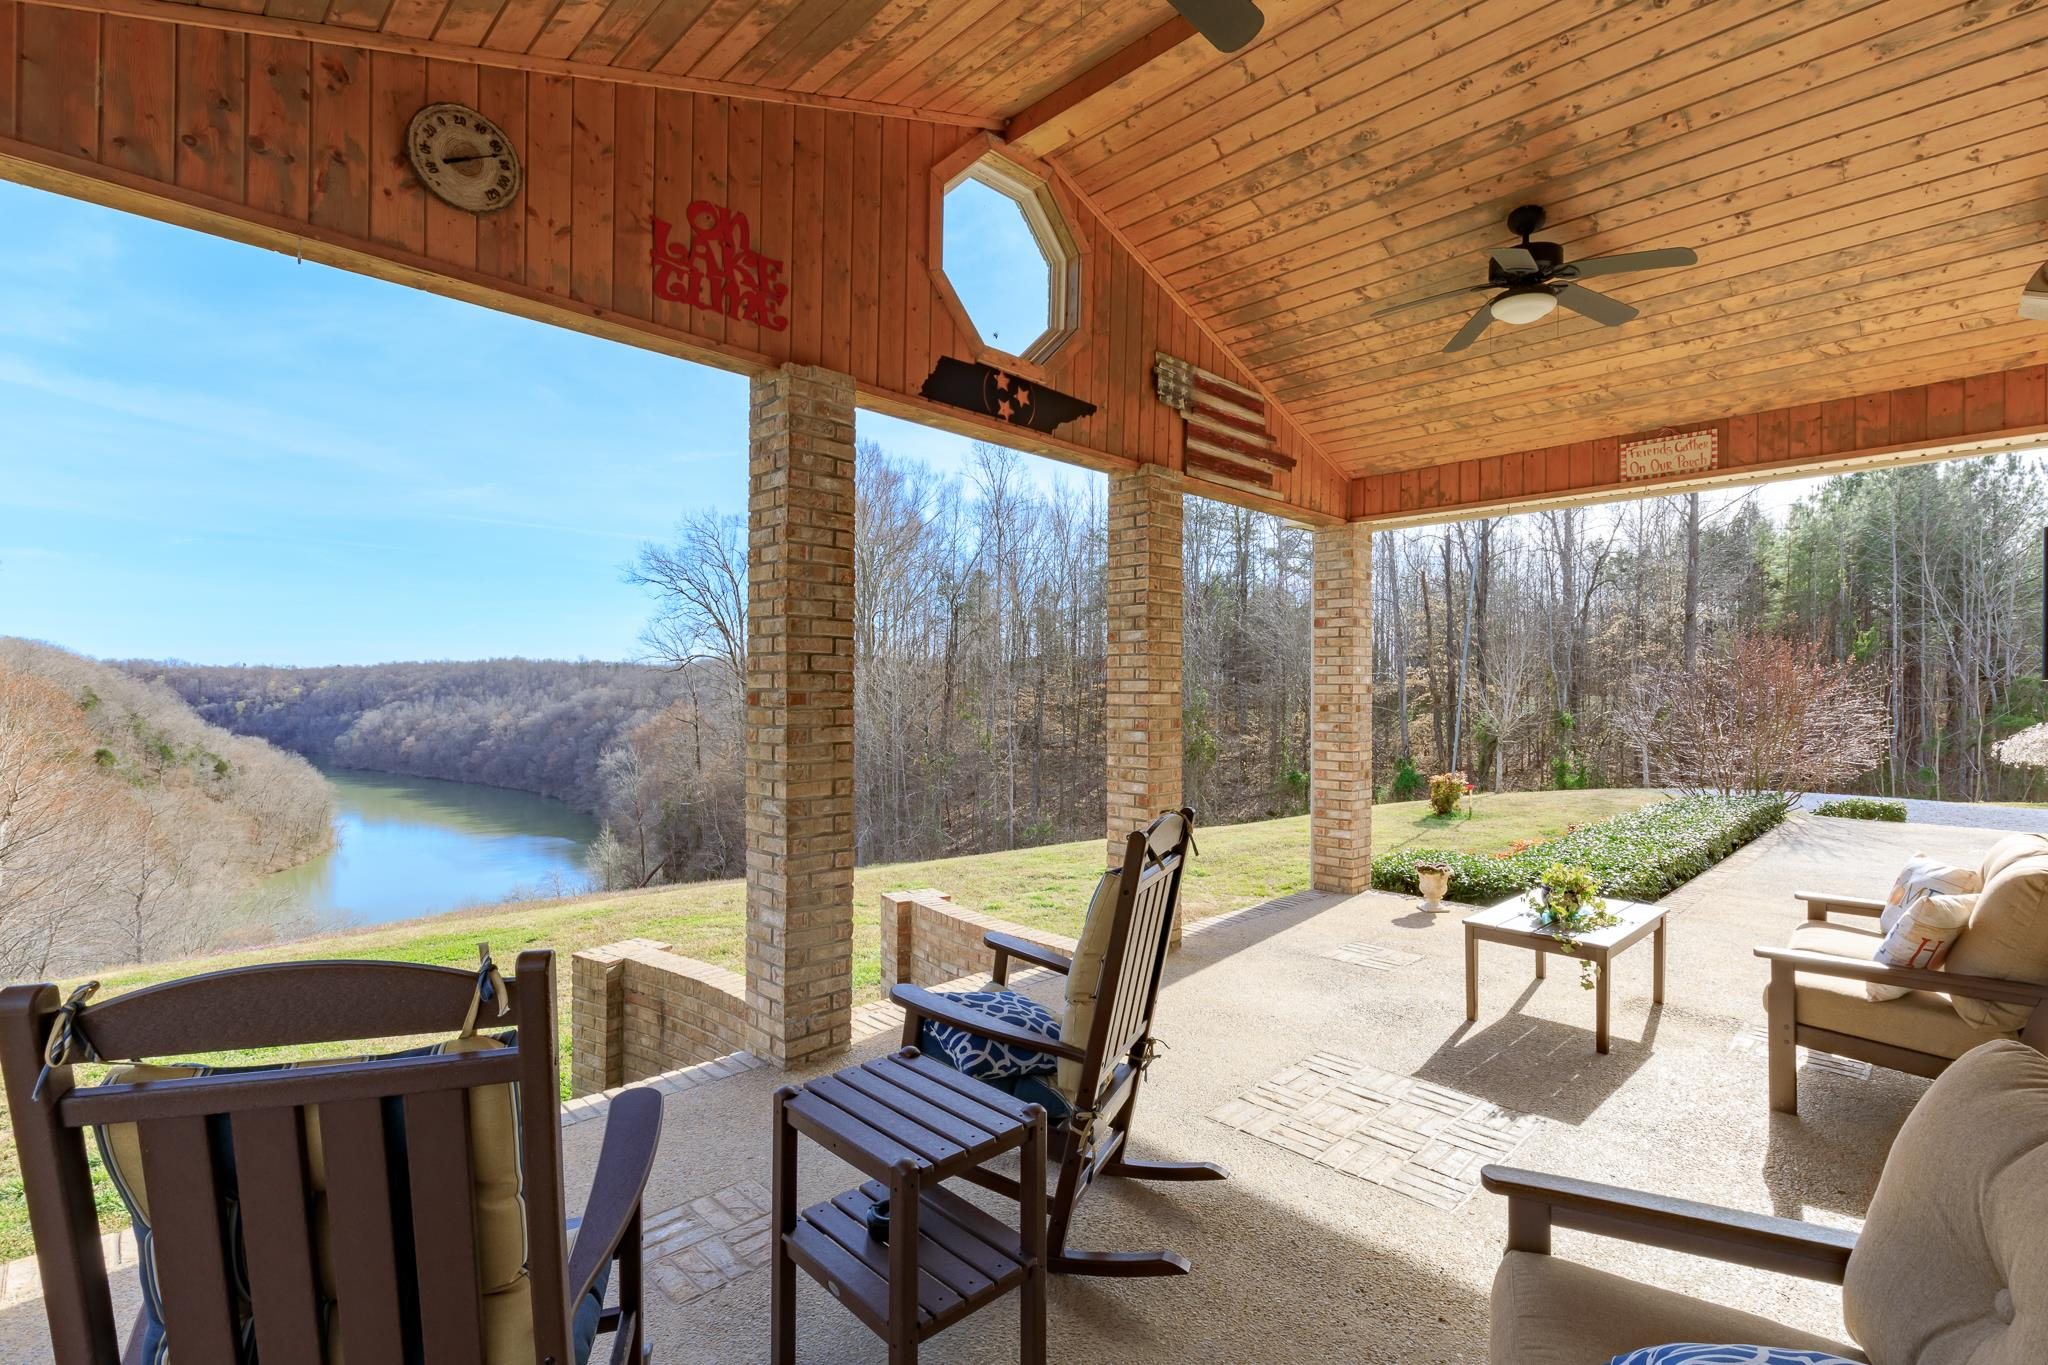 4400 Jefferson Rd, Smithville, TN 37166 - Smithville, TN real estate listing